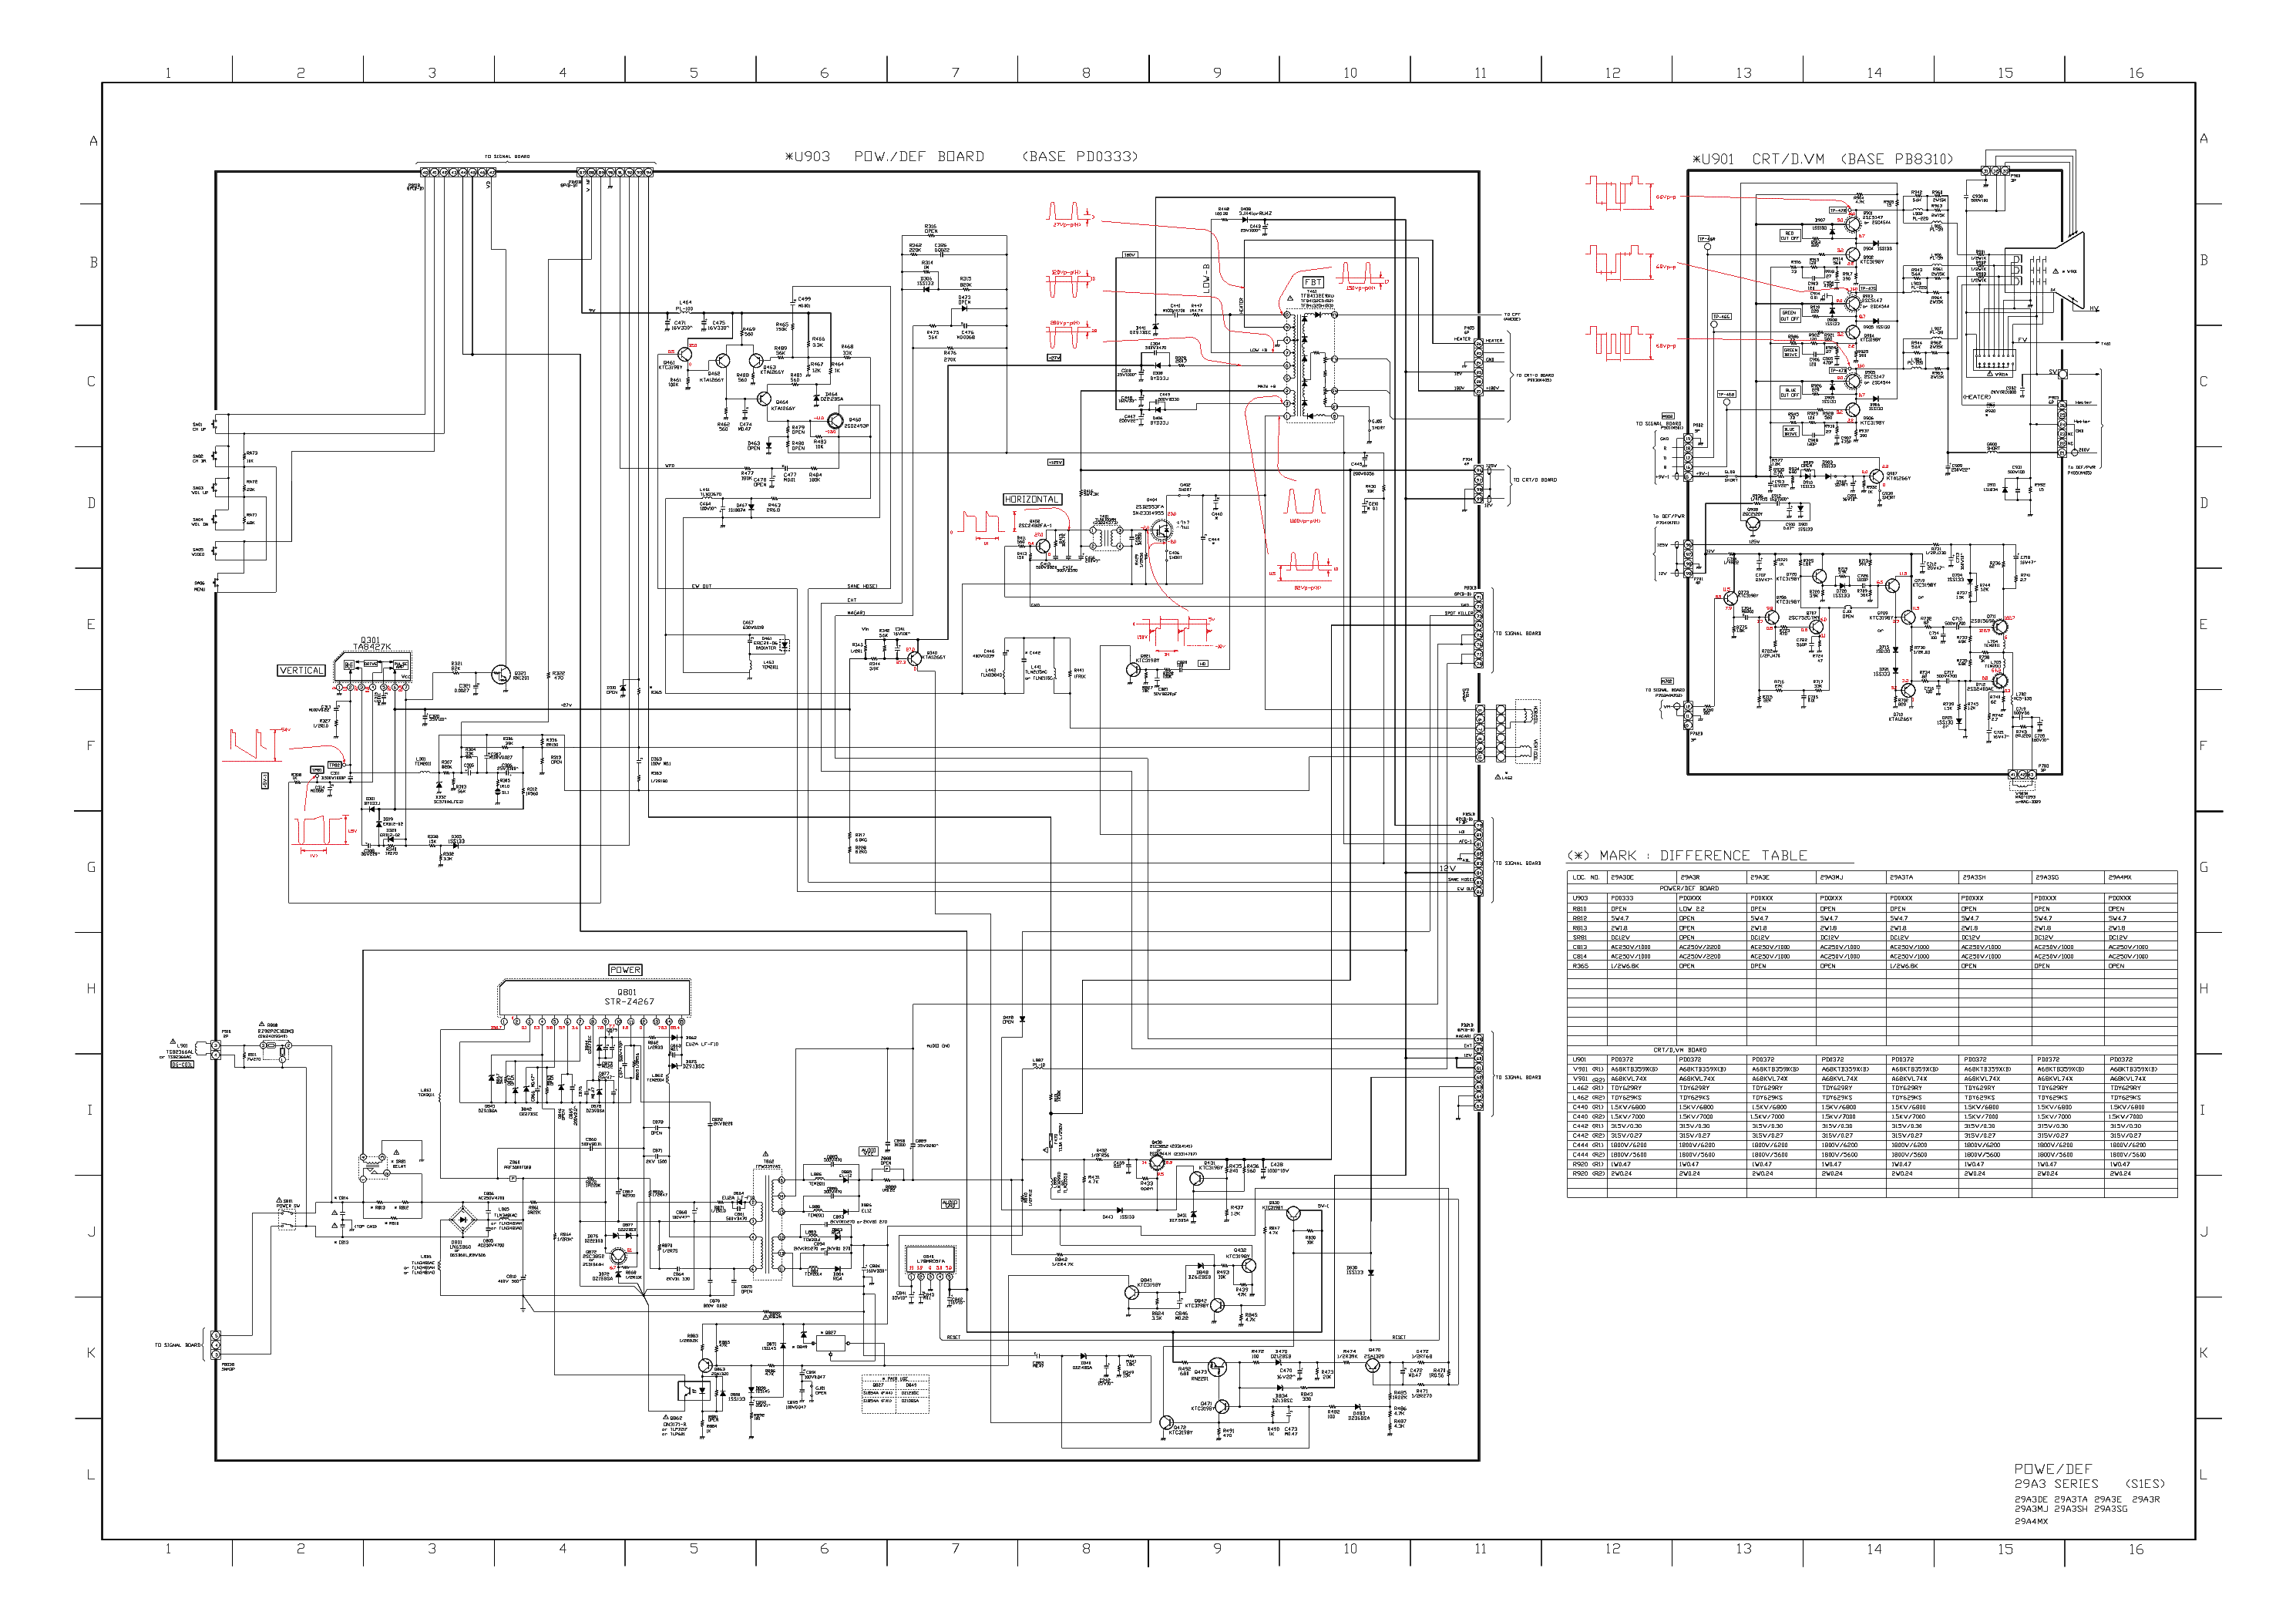 Toshiba 32hfx73 Circuit Diagram 1 Page Preview - Wiring Diagram Database